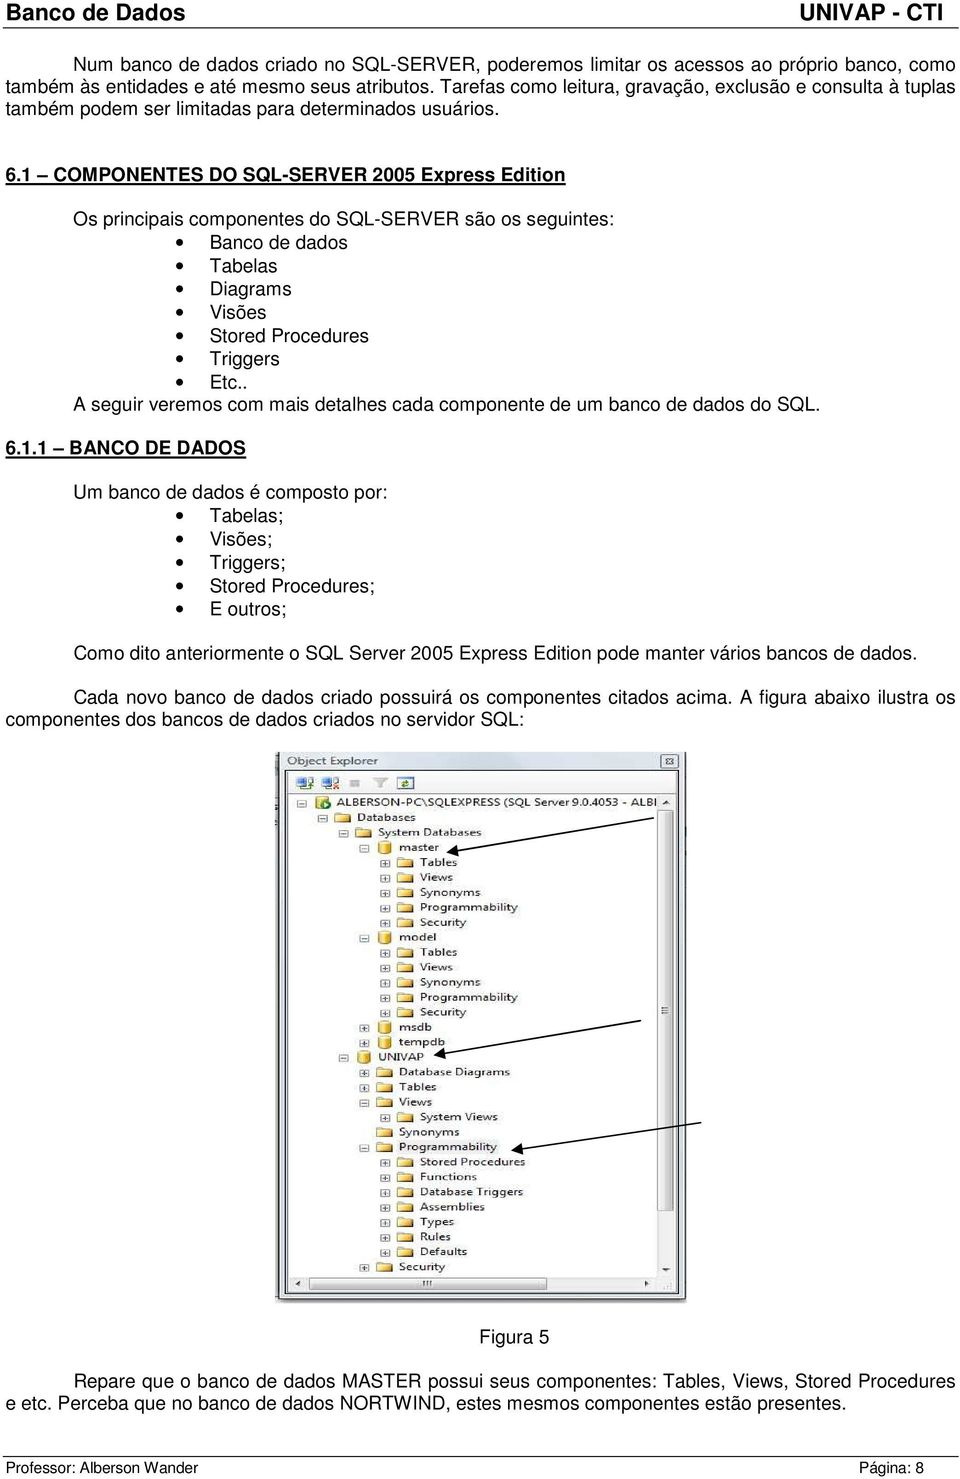 1 COMPONENTES DO SQL-SERVER 2005 Express Edition Os principais componentes do SQL-SERVER são os seguintes: Banco de dados Tabelas Diagrams Visões Stored Procedures Triggers Etc.